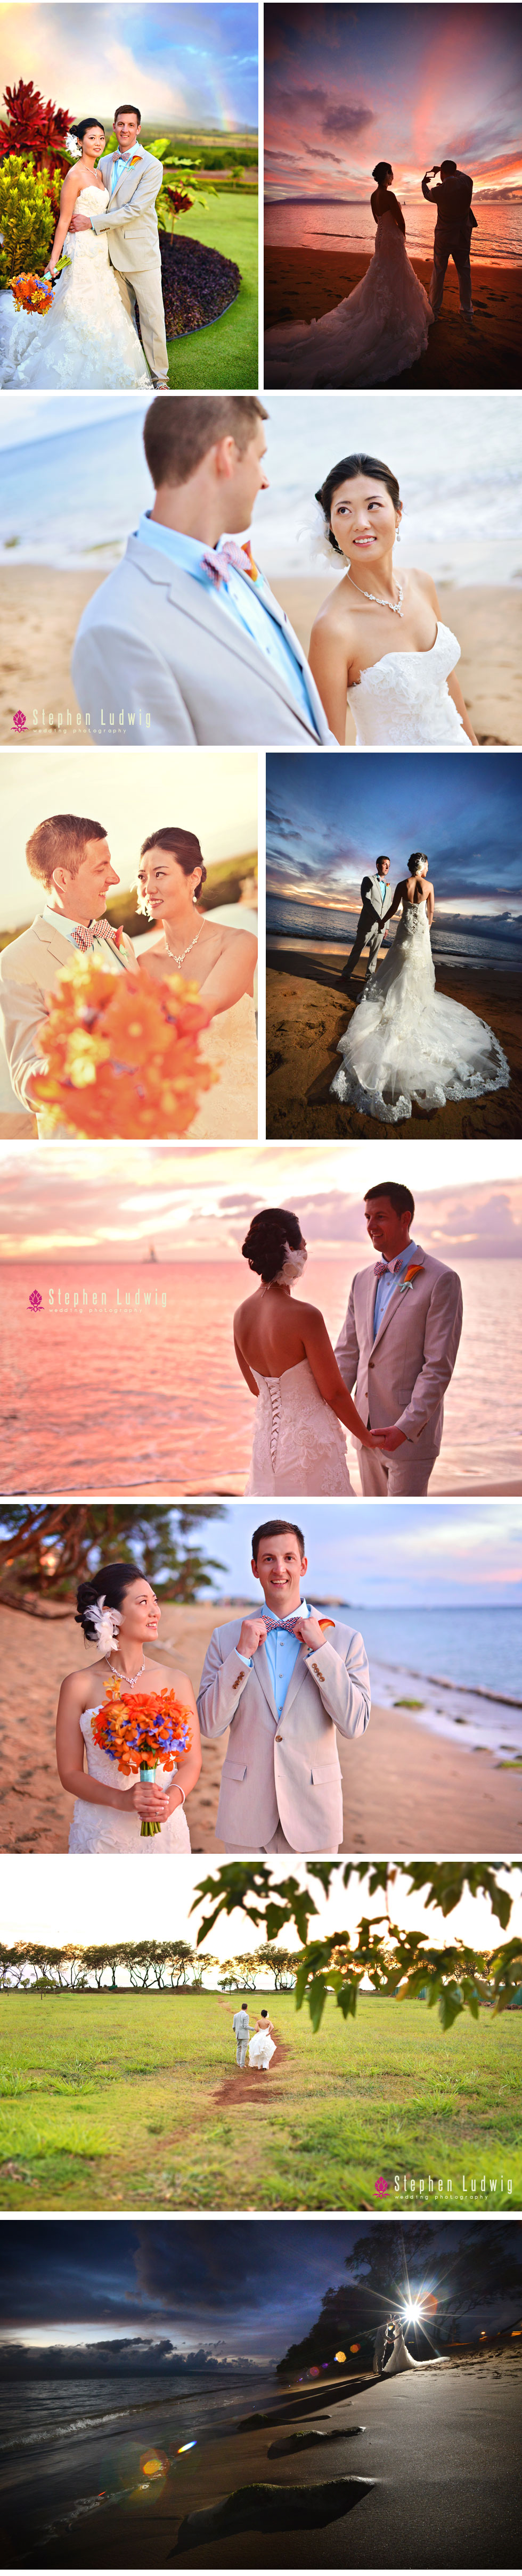 Mark-and-Mi-Joung-5-stephen-ludwig-photography-hawaii